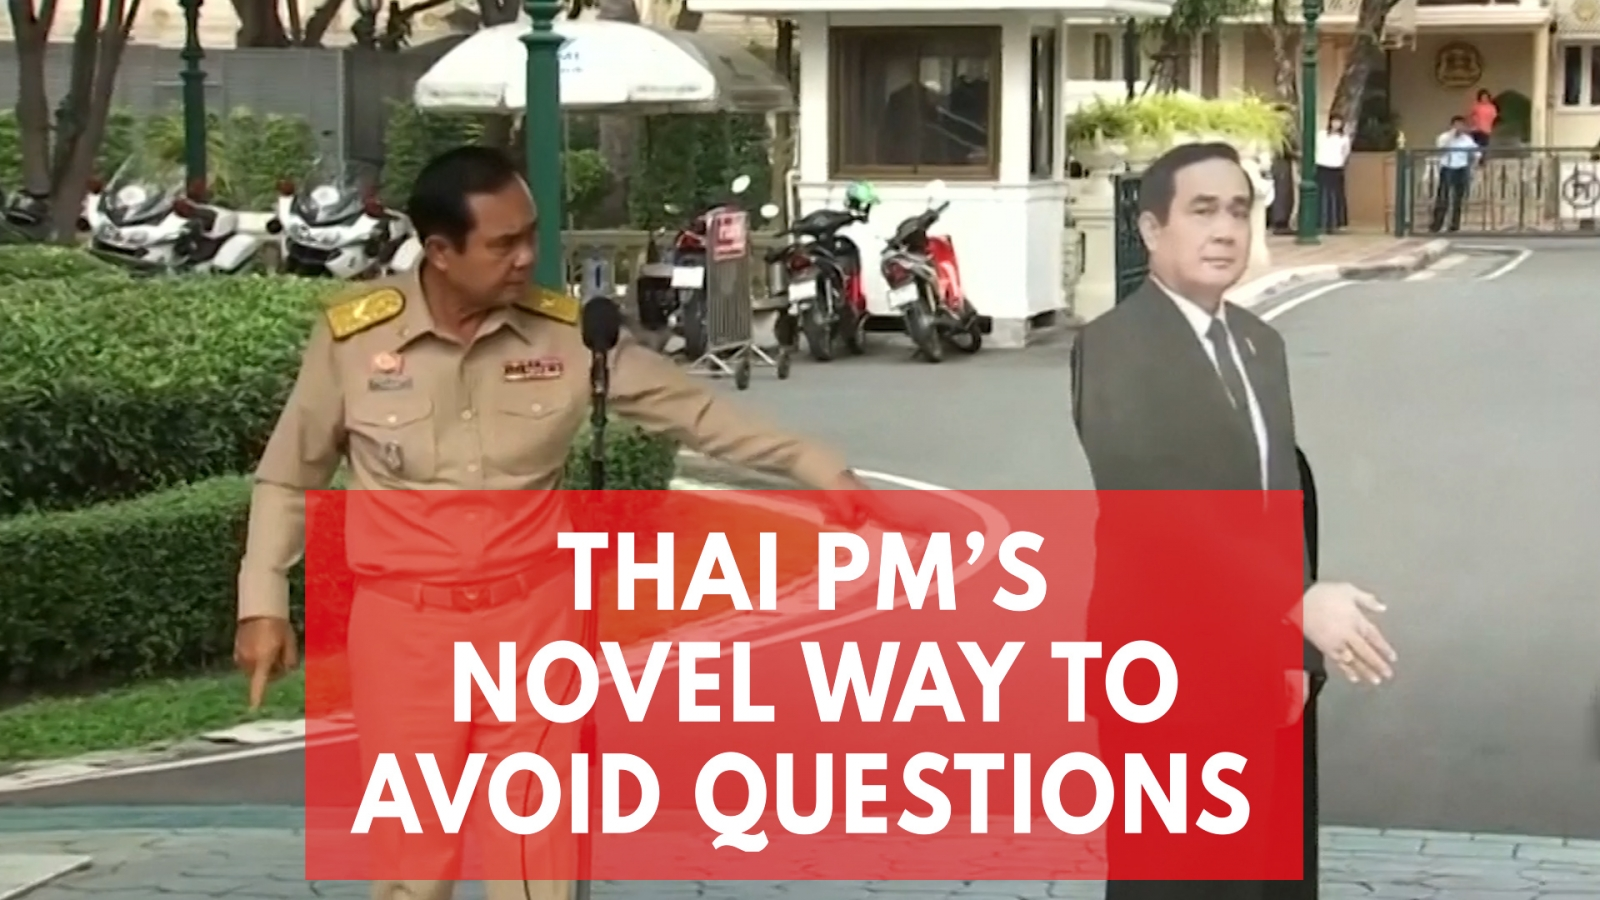 ask-this-guy-thai-pm-leaves-cardboard-cutout-to-avoid-questions-from-press